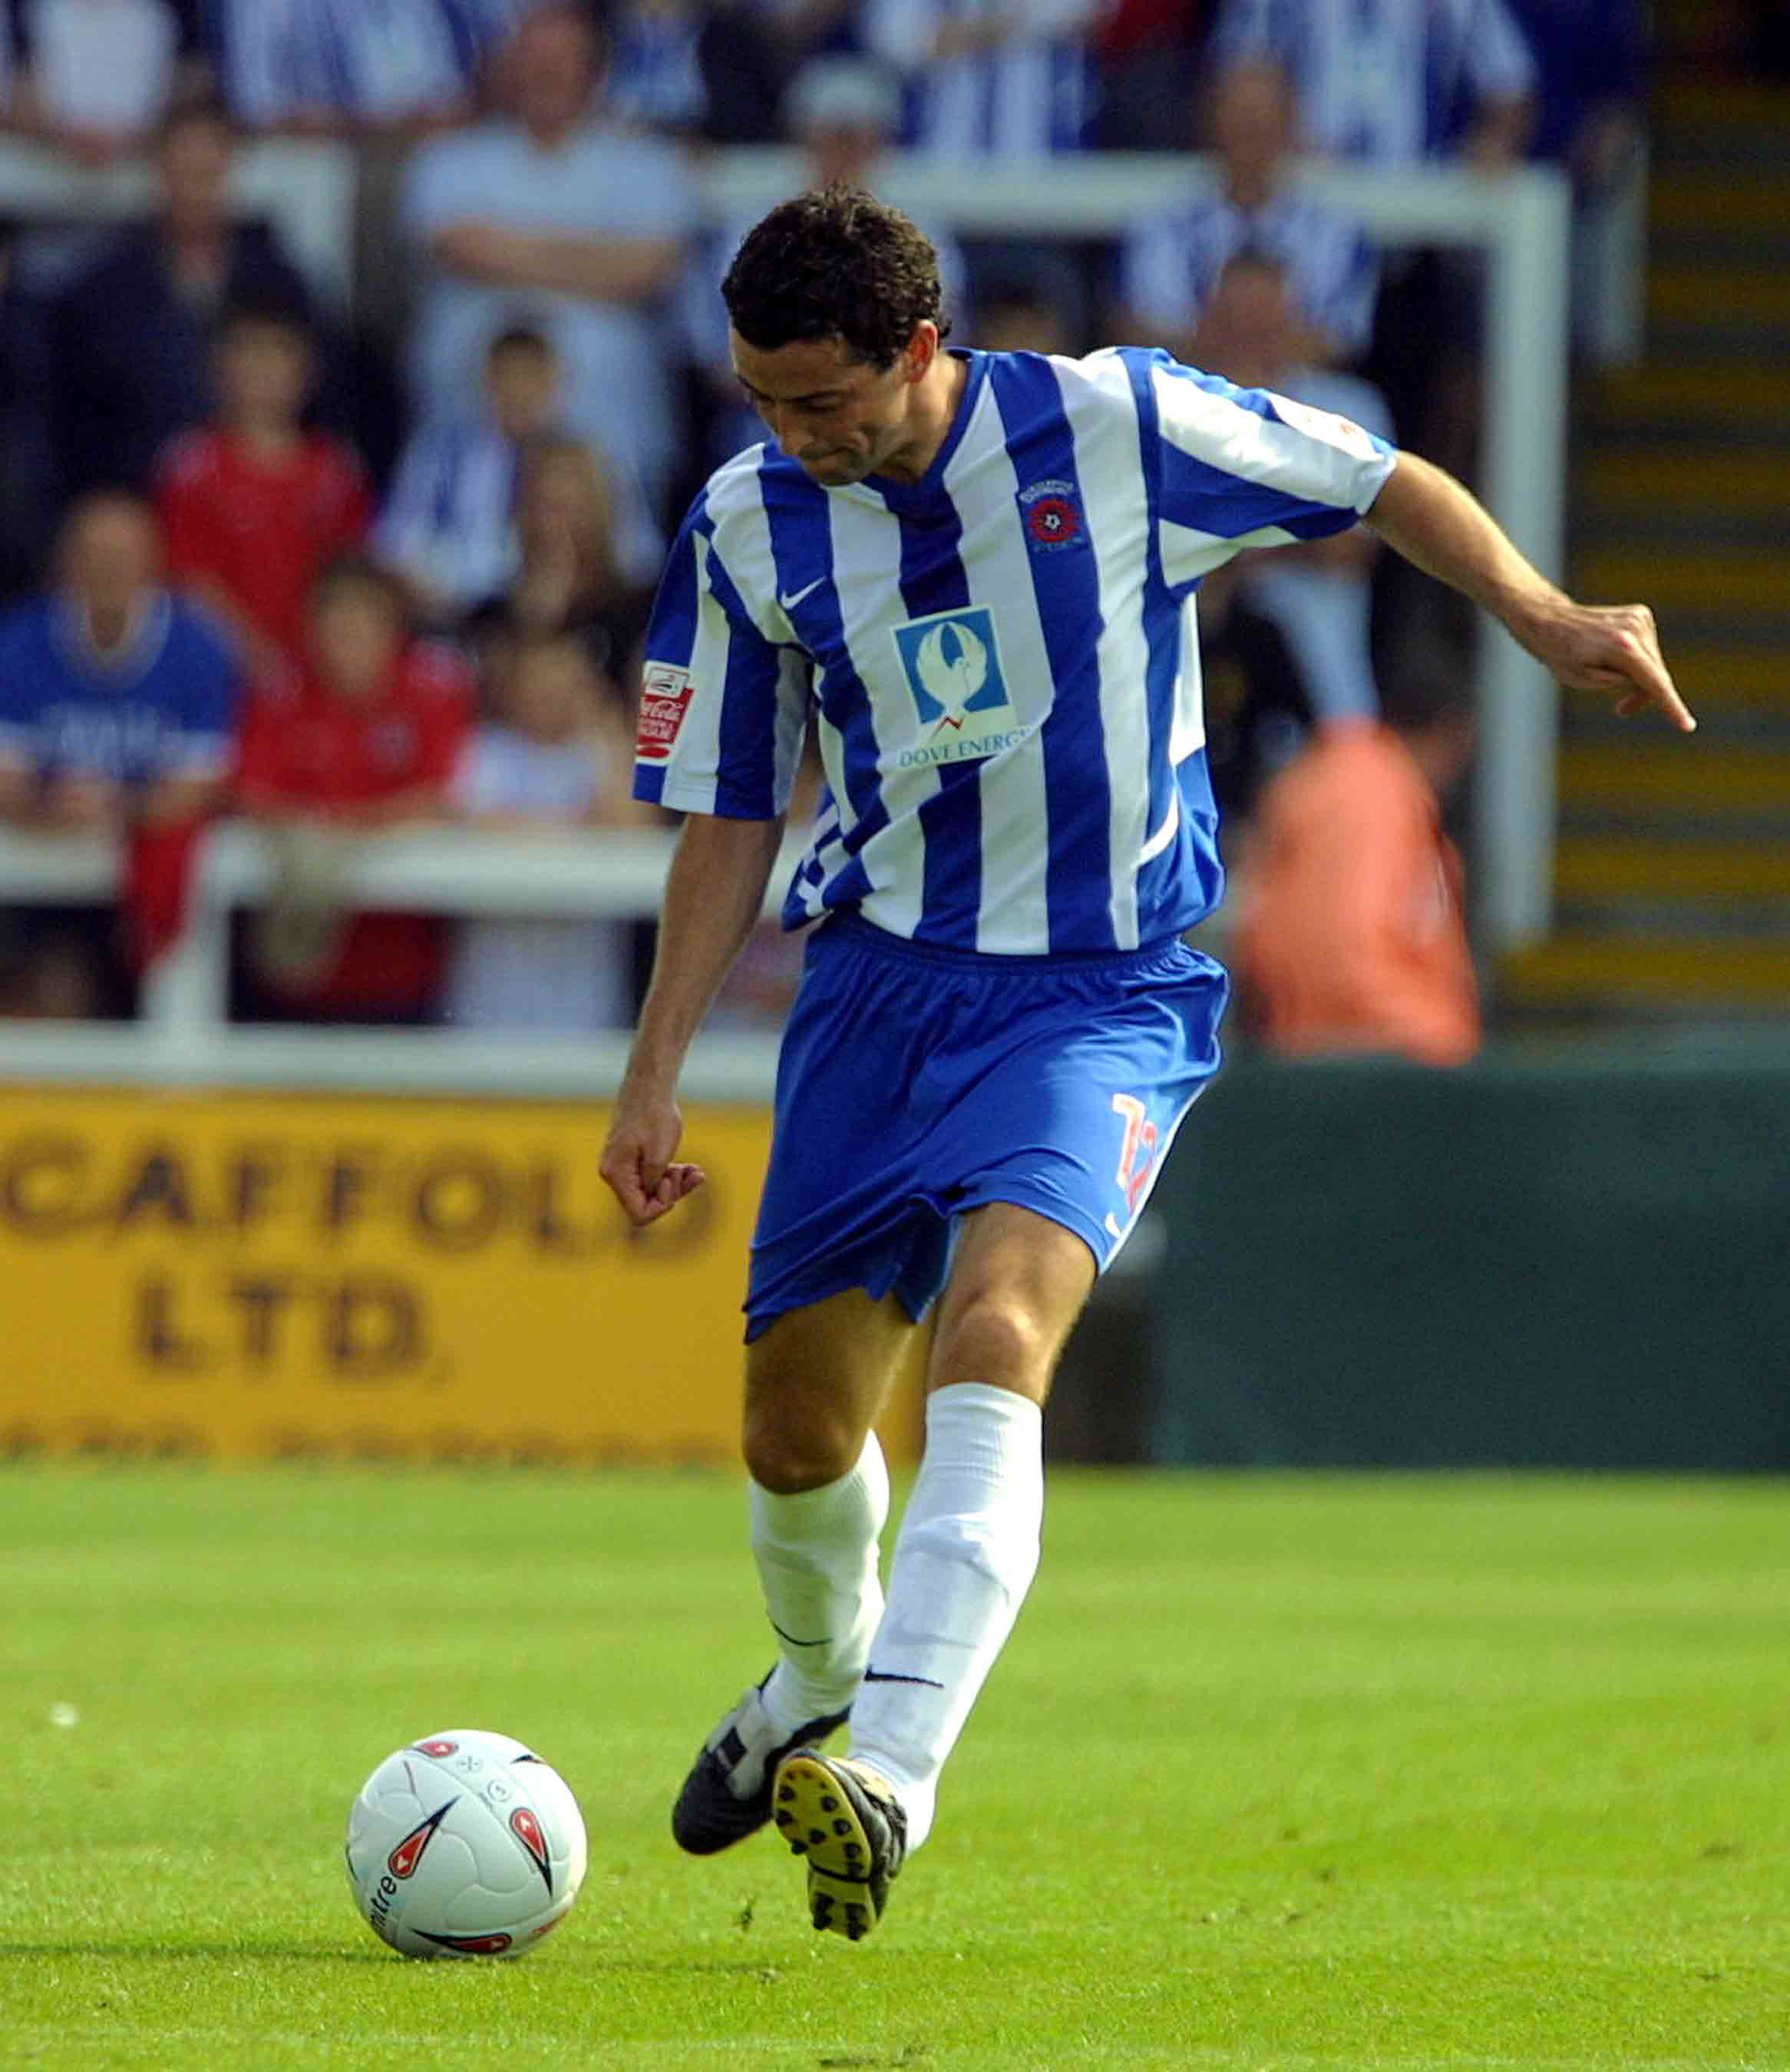 BACK IN THE DAY: Jack Ross playing for Hartlepool in 2004